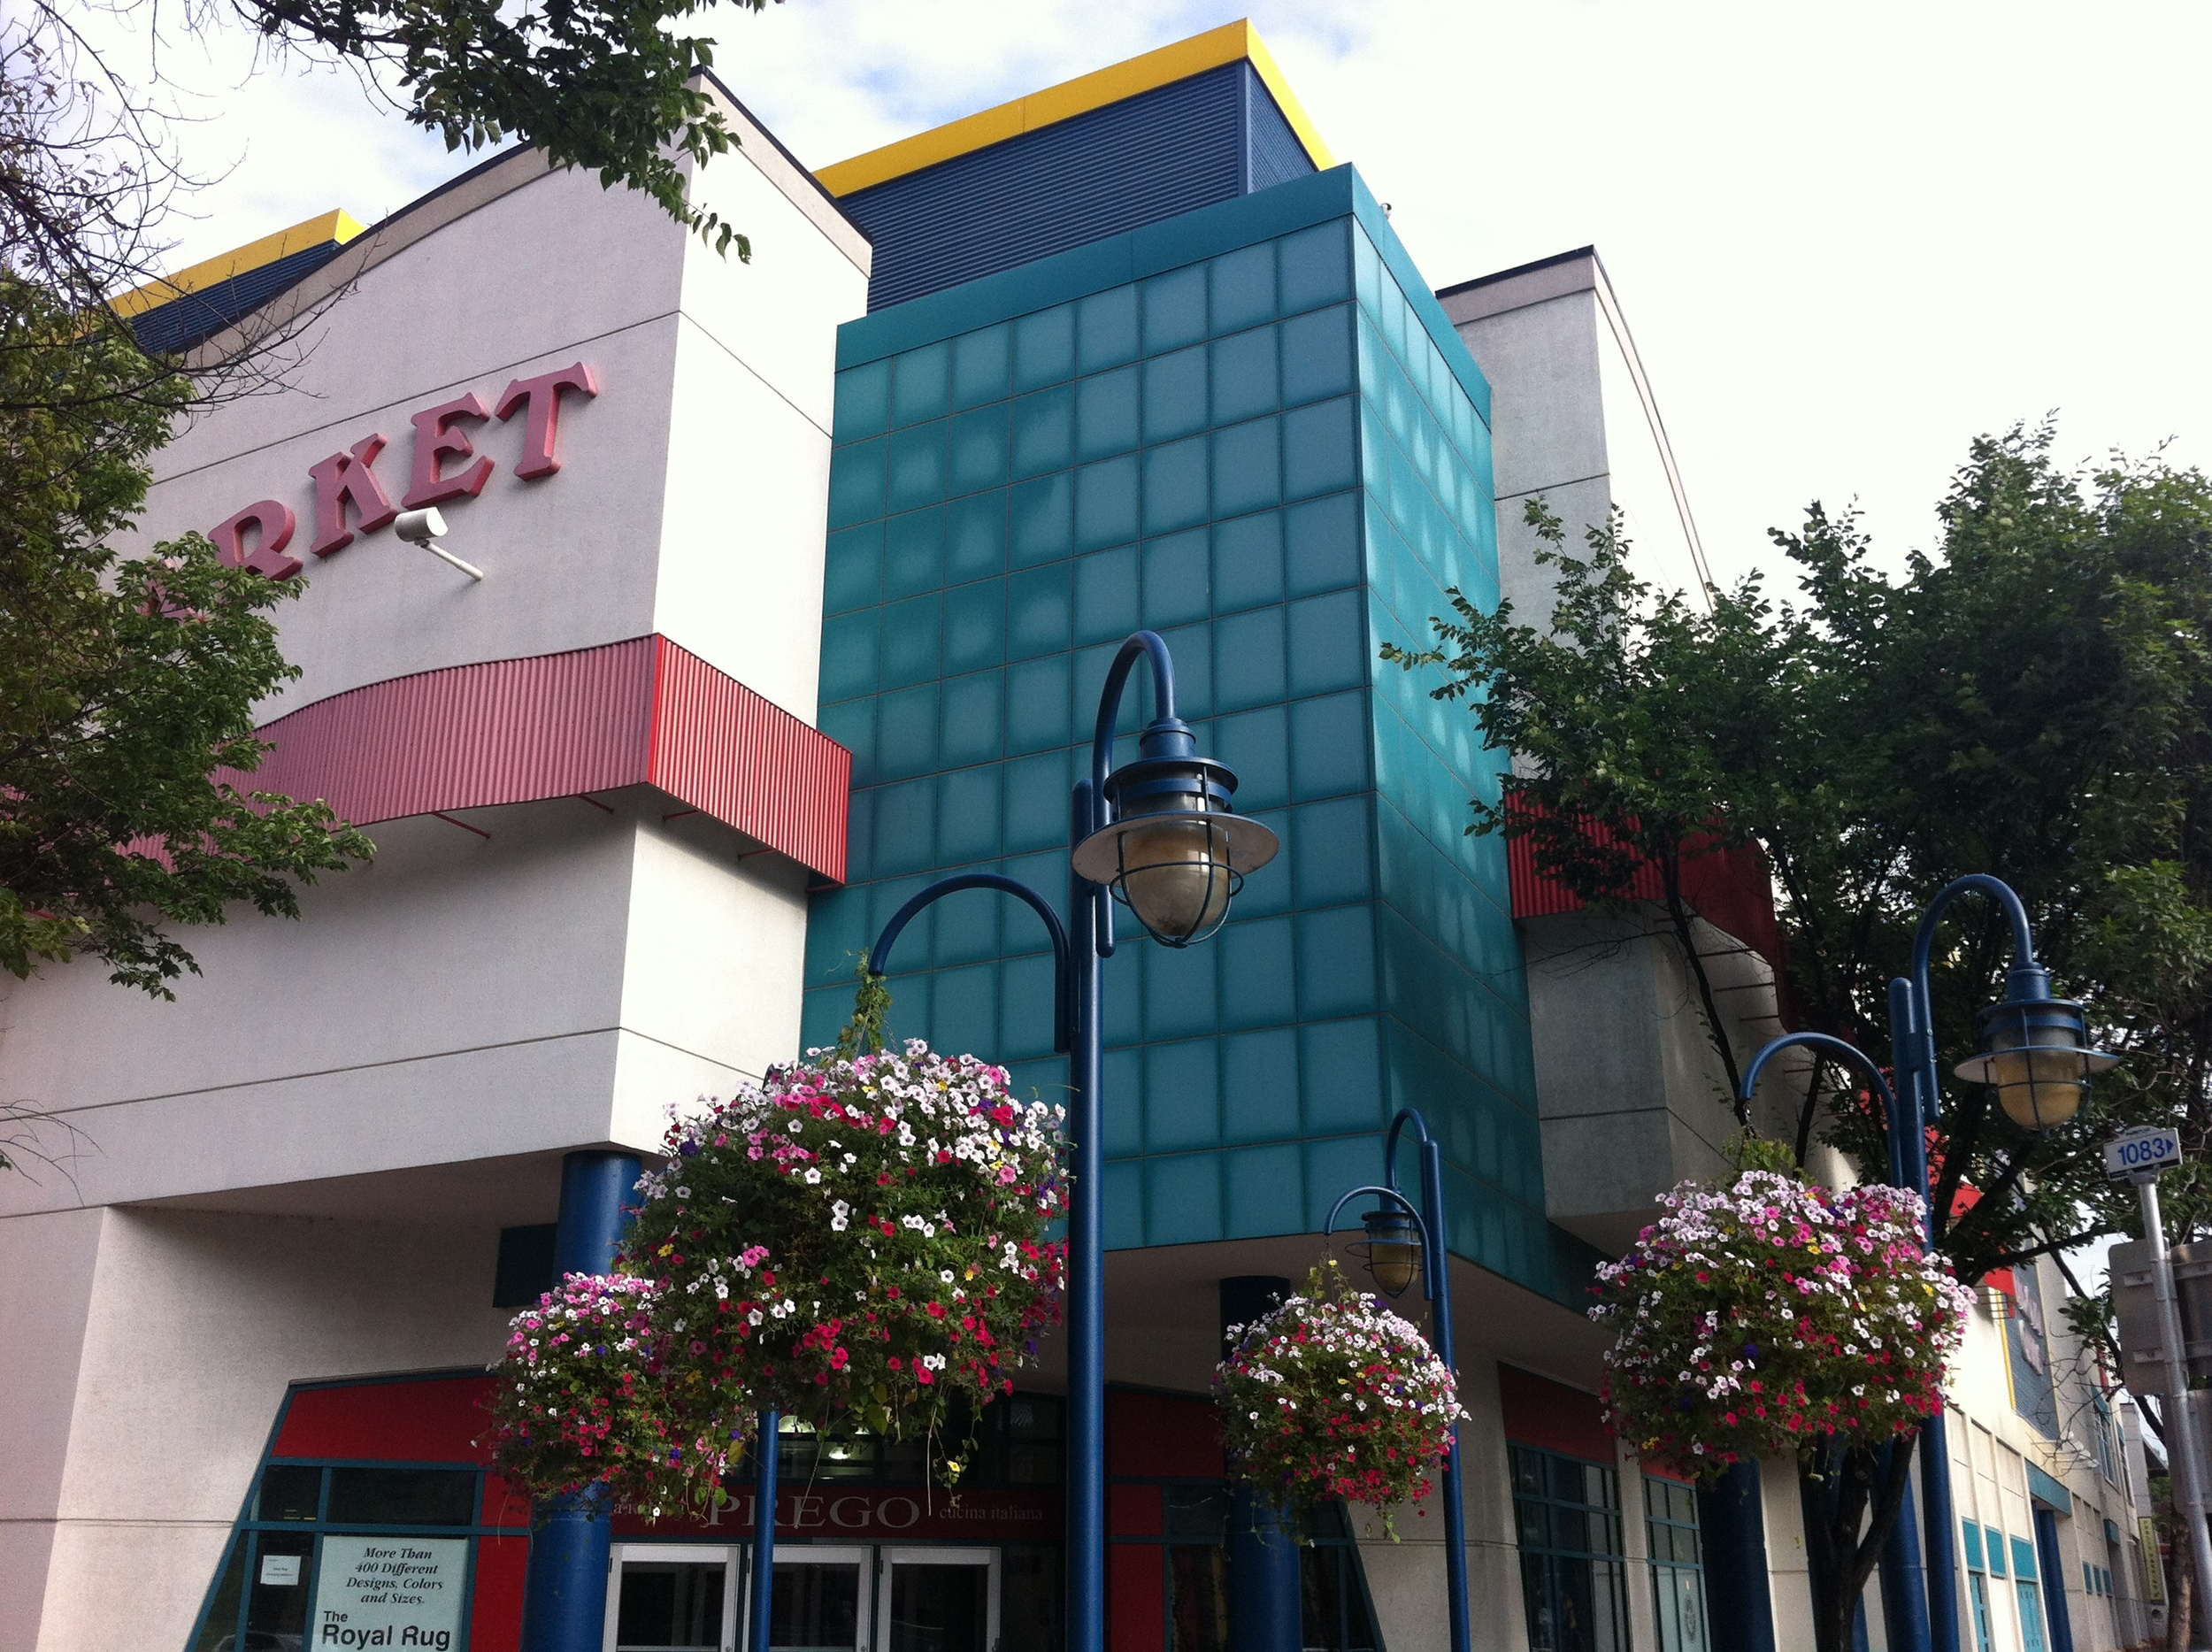 Eau Claire Market is also nearby with its contemporary design and use of yellow, red and blue colours.